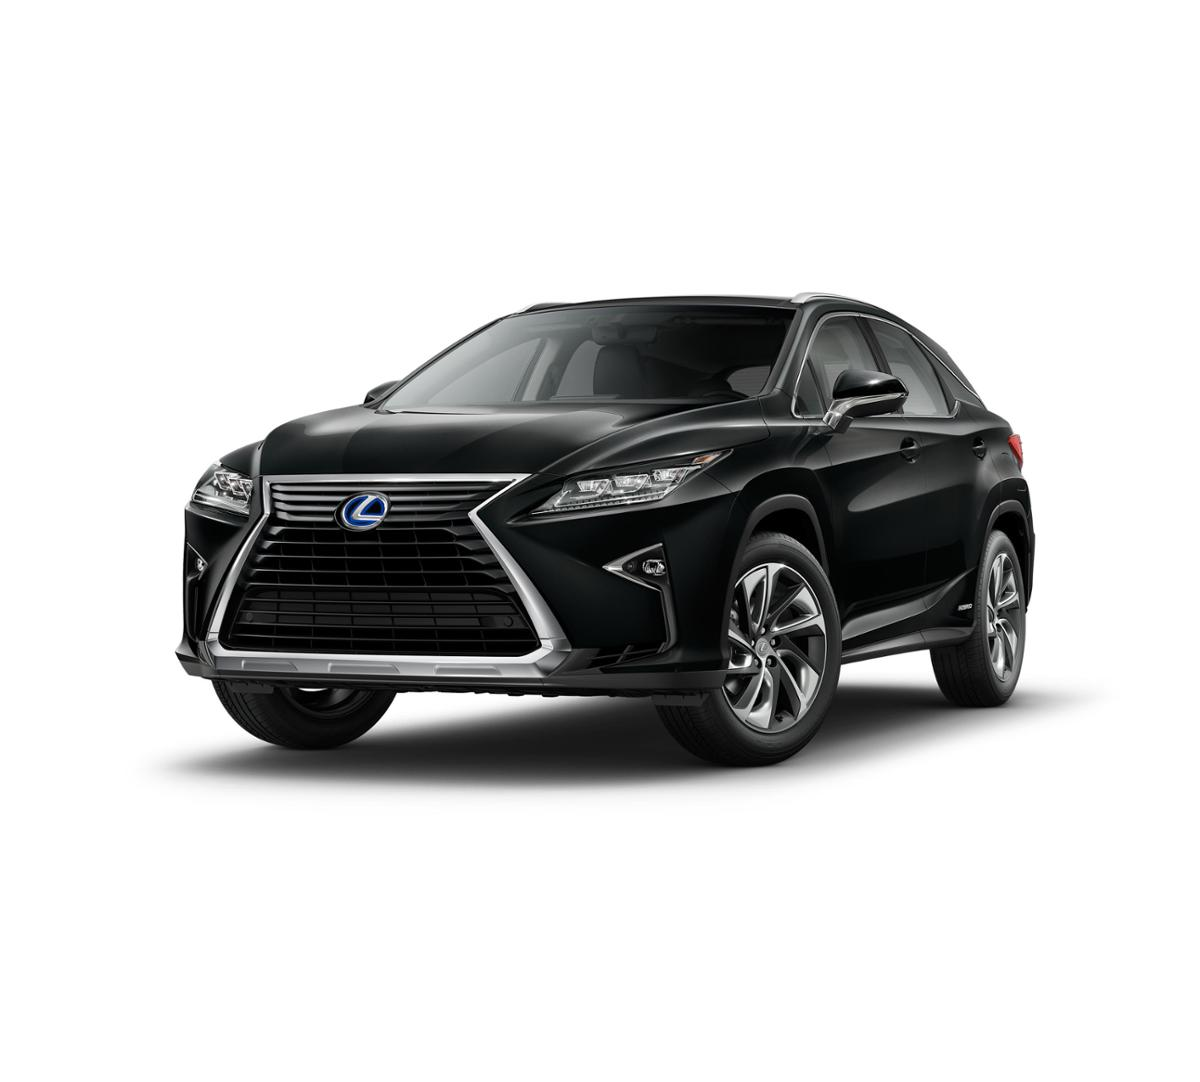 2018 lexus rx 450h for sale springfield mo. Black Bedroom Furniture Sets. Home Design Ideas